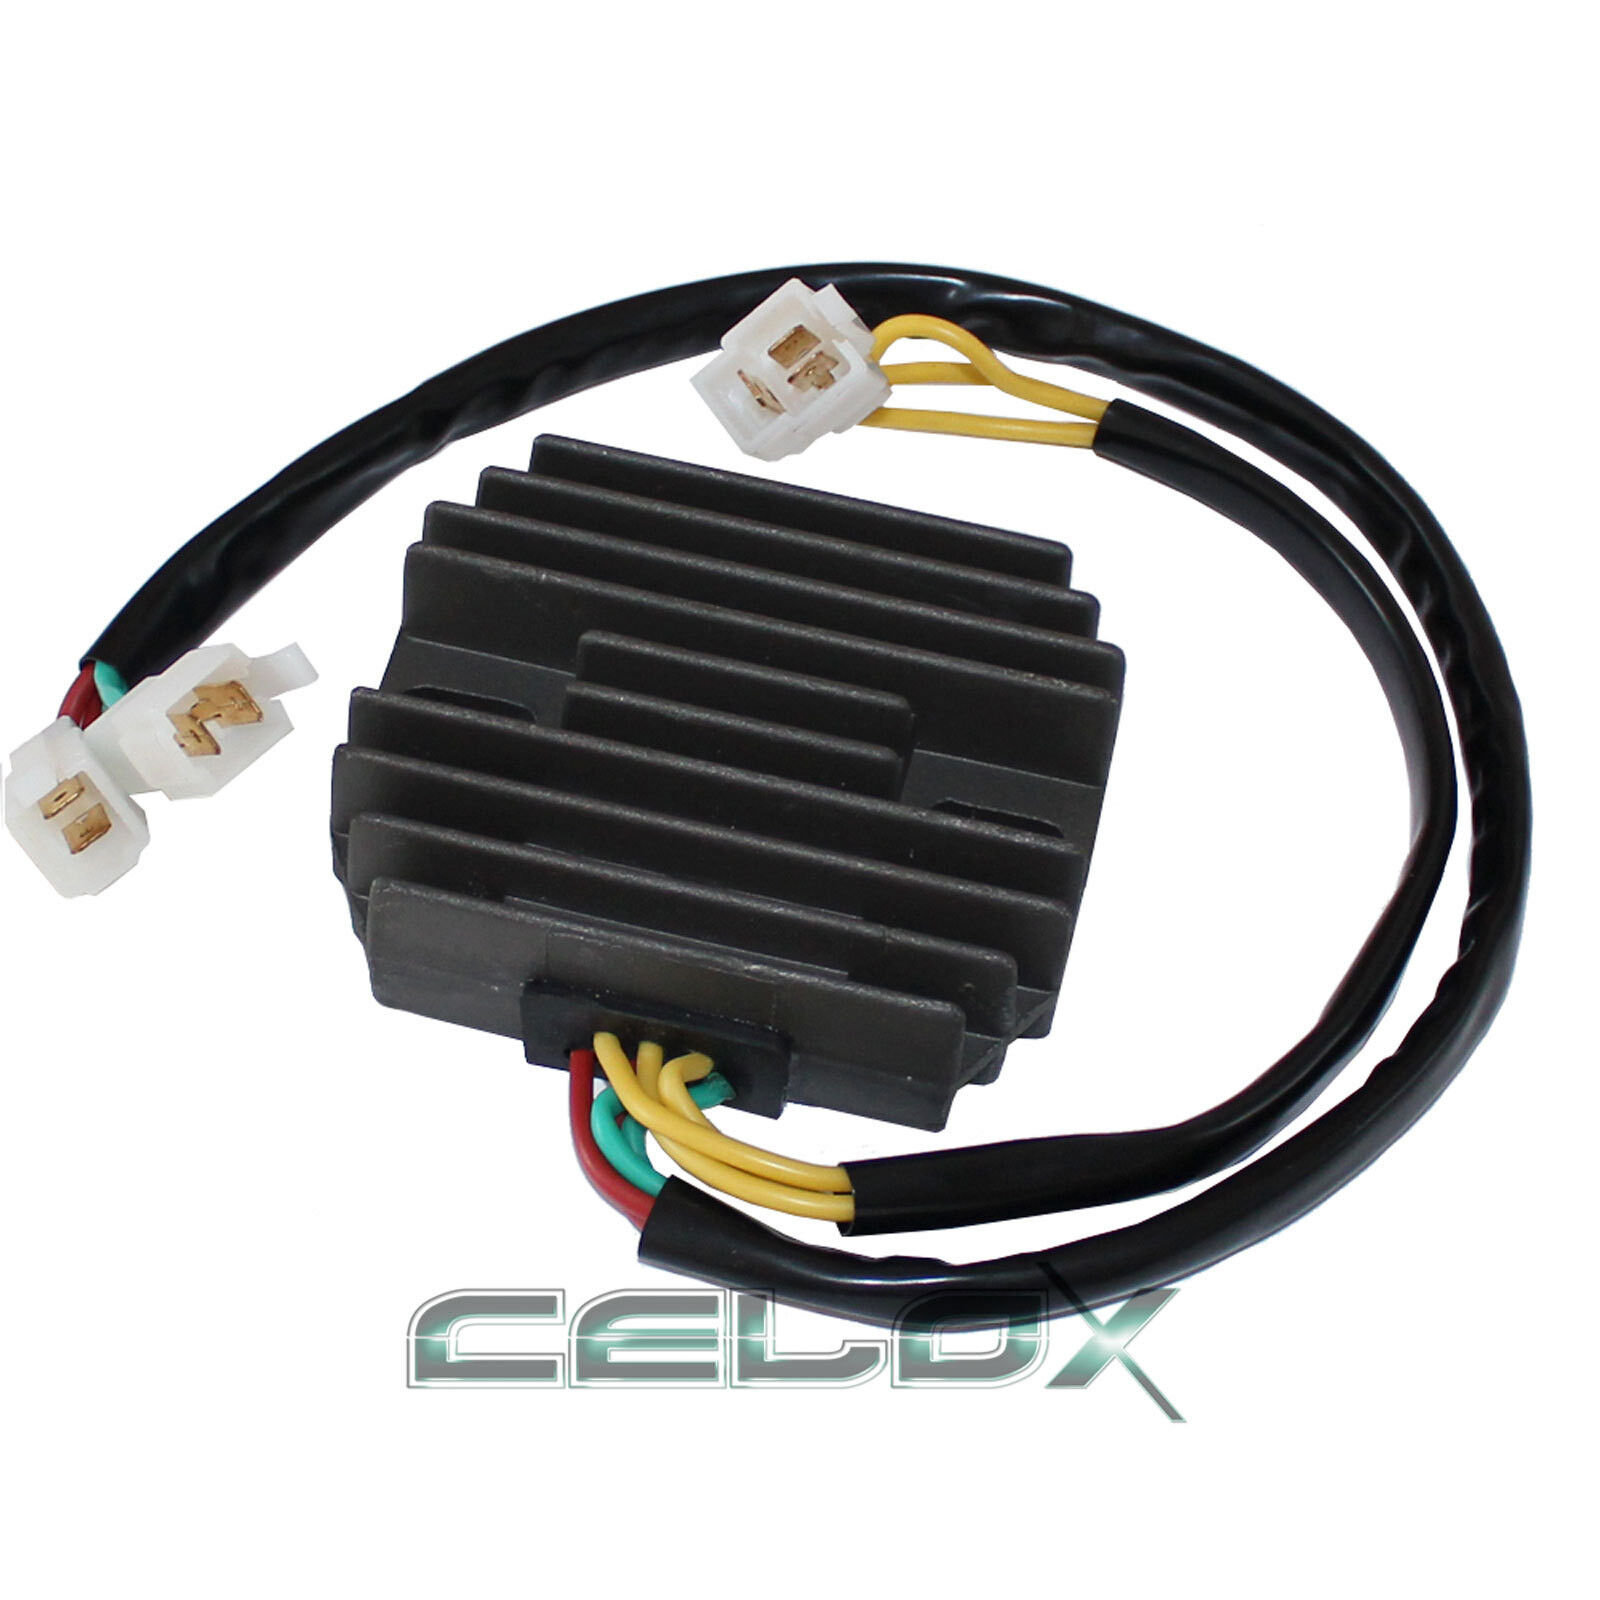 Regulator Rectifier For Honda Vt1100 Vt 1100 C Shadow Spirit 1998 1983 Motorcycle 2005